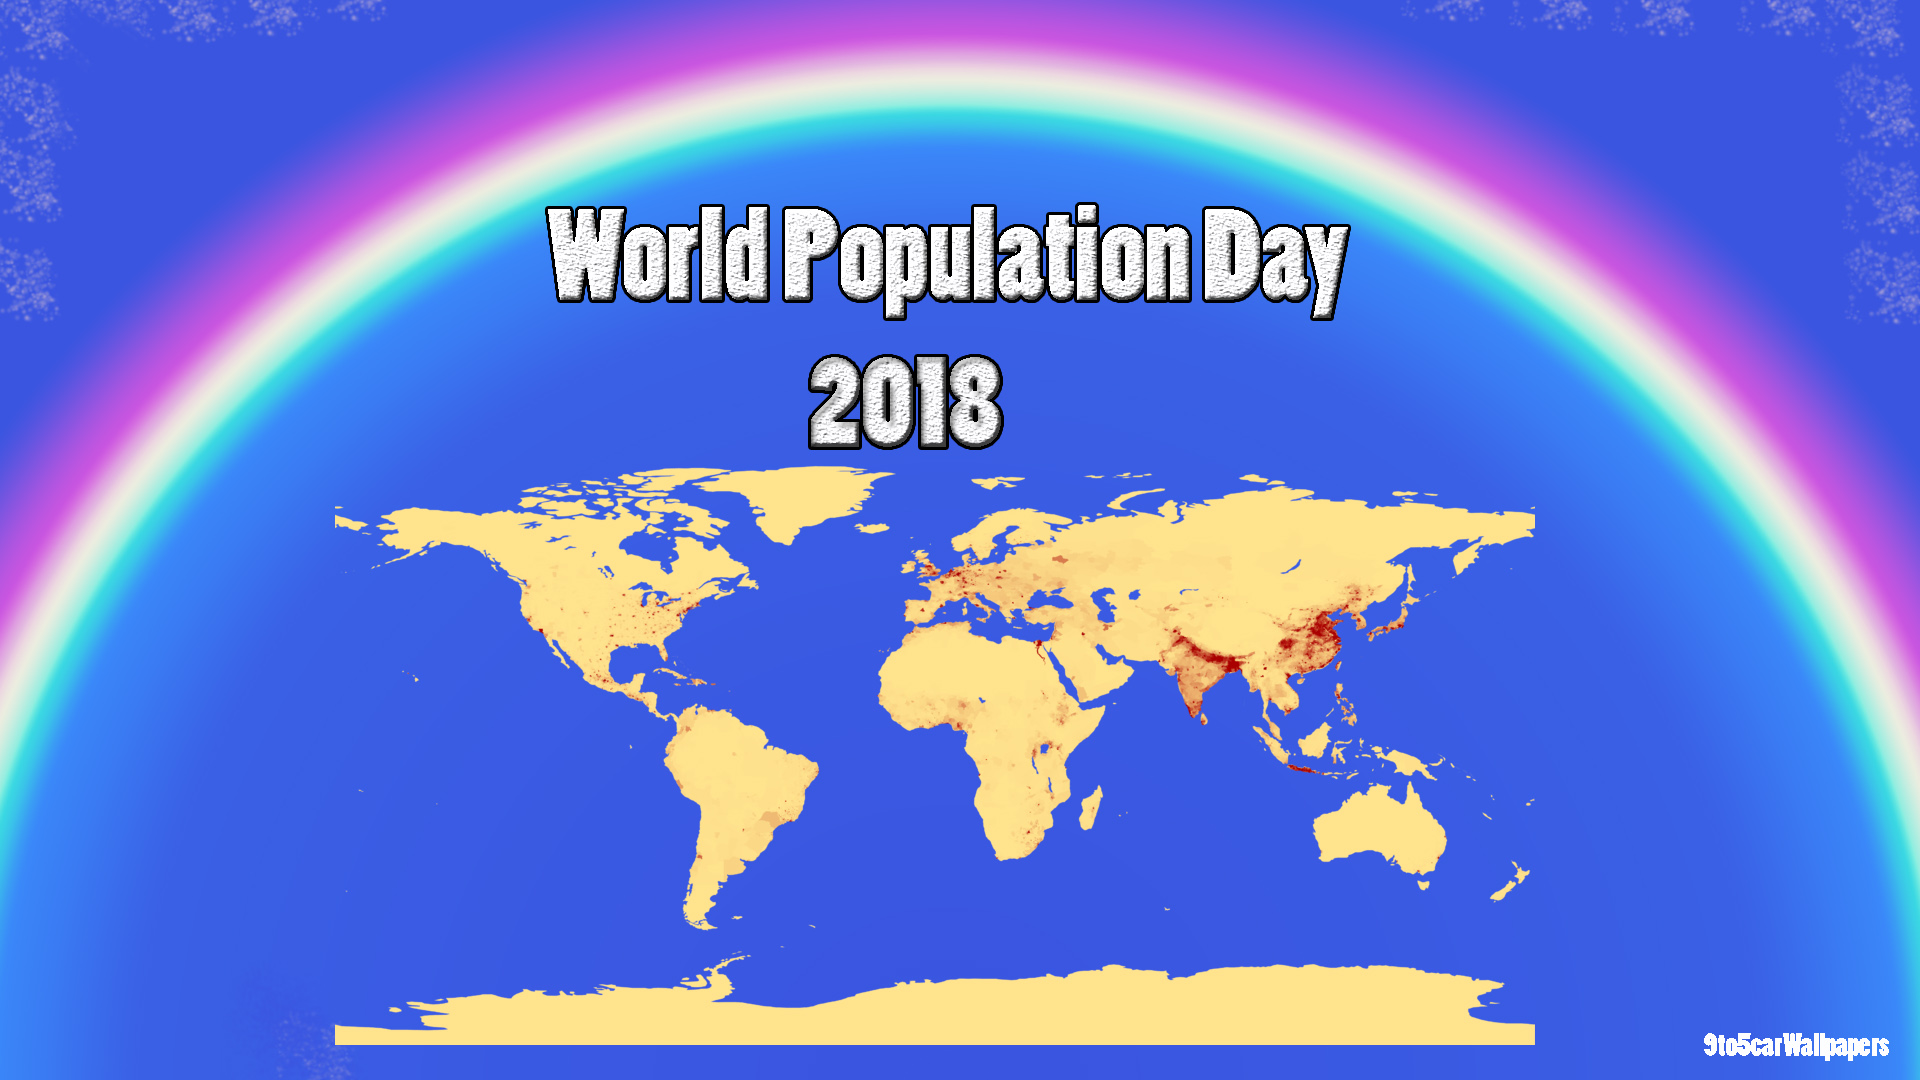 world-population-day-2018-images-cards-wallpapers